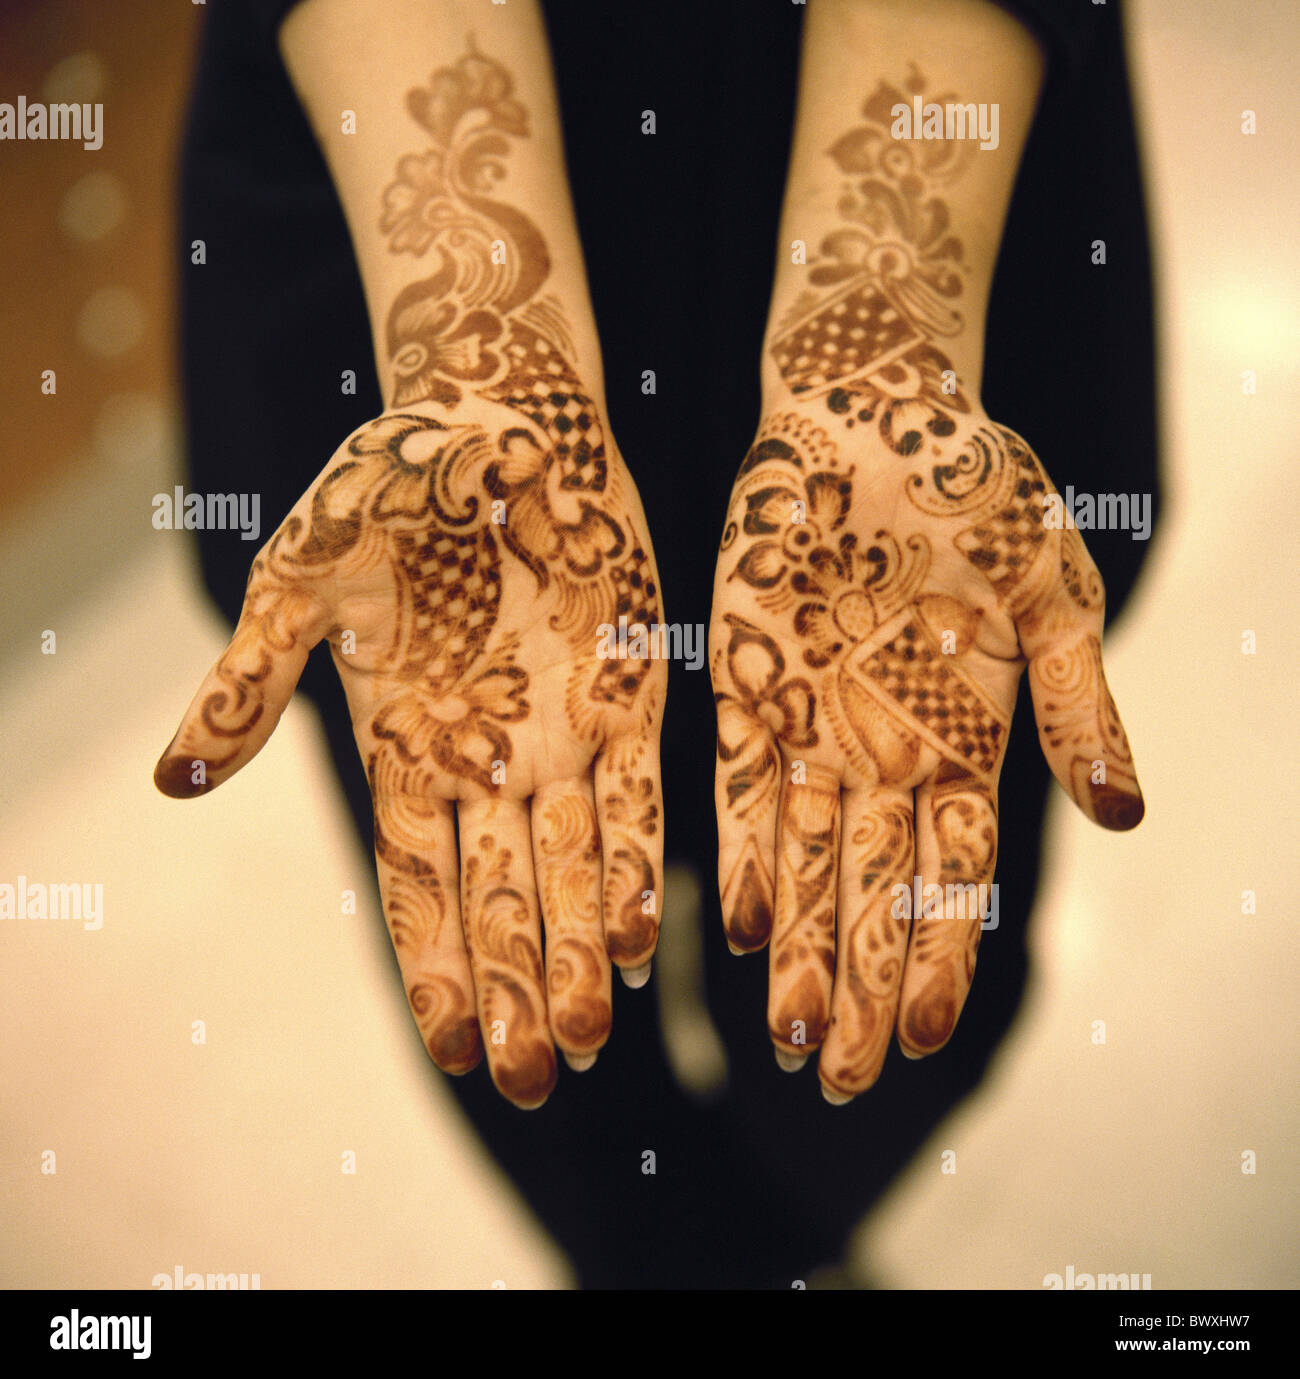 painted 10331604 Bahrein woman hands henna life pattern sample close-up ornaments tattoo Stock Photo